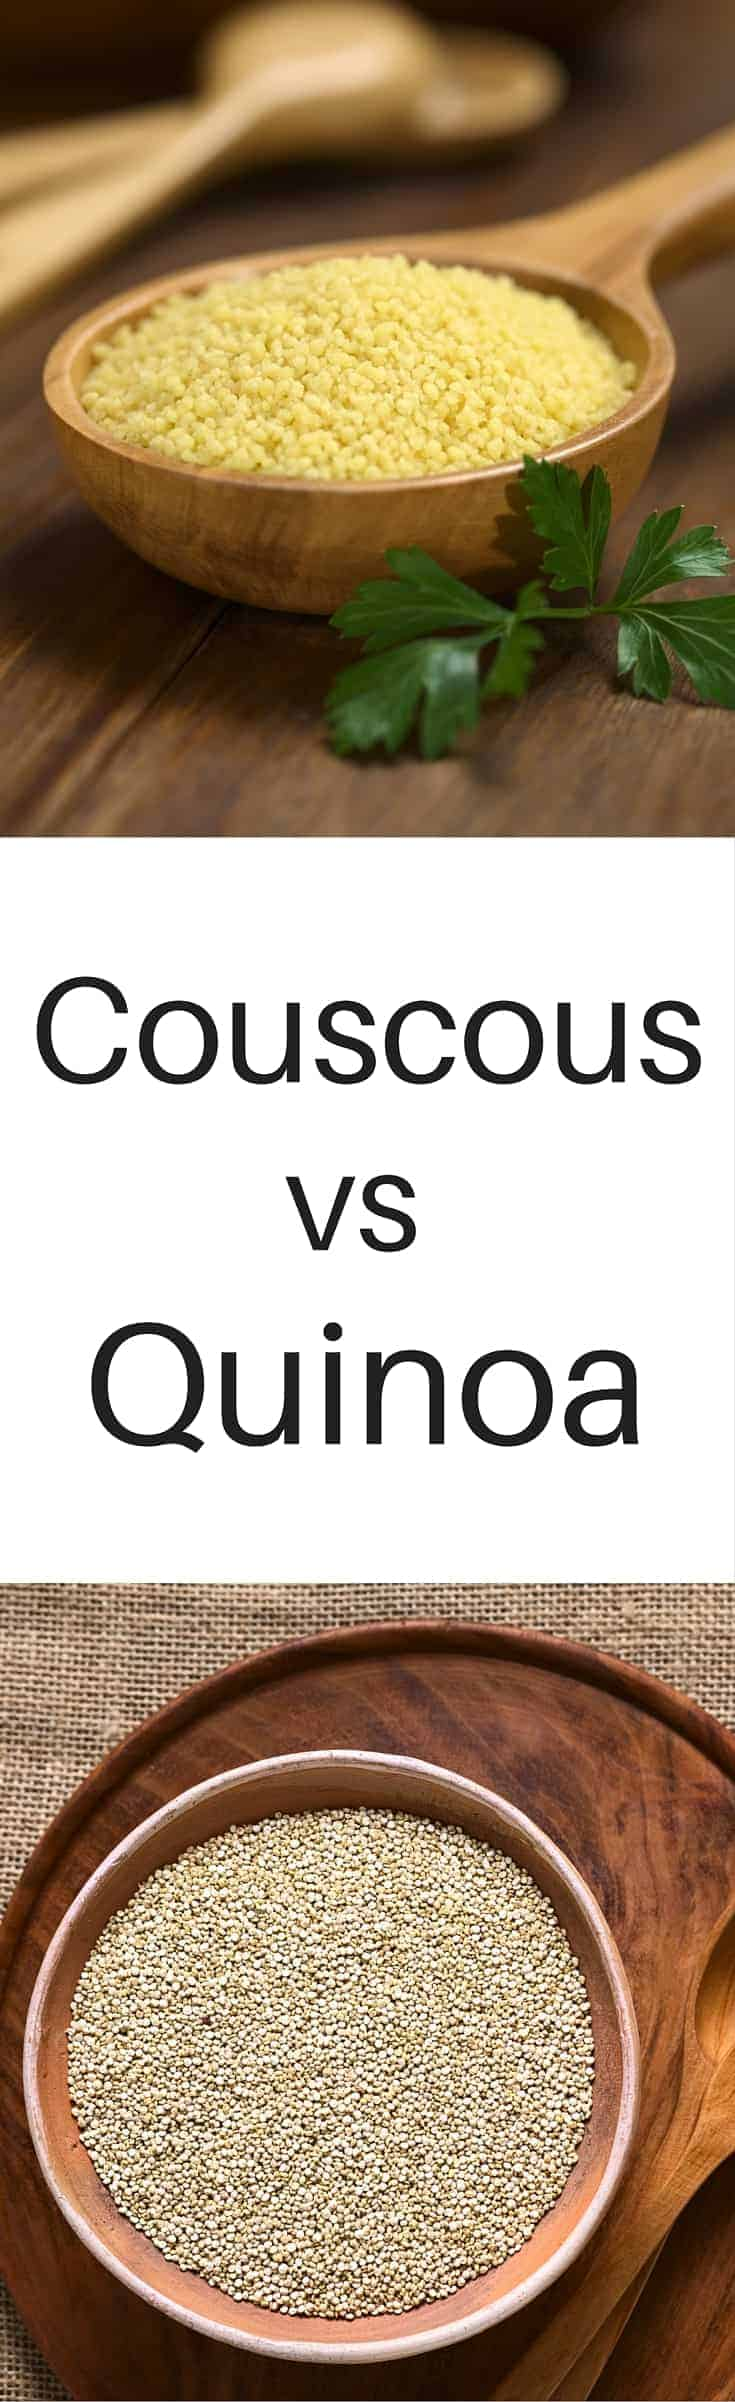 couscous and quinoa look similar but are there health benefits of couscous more than quinoa